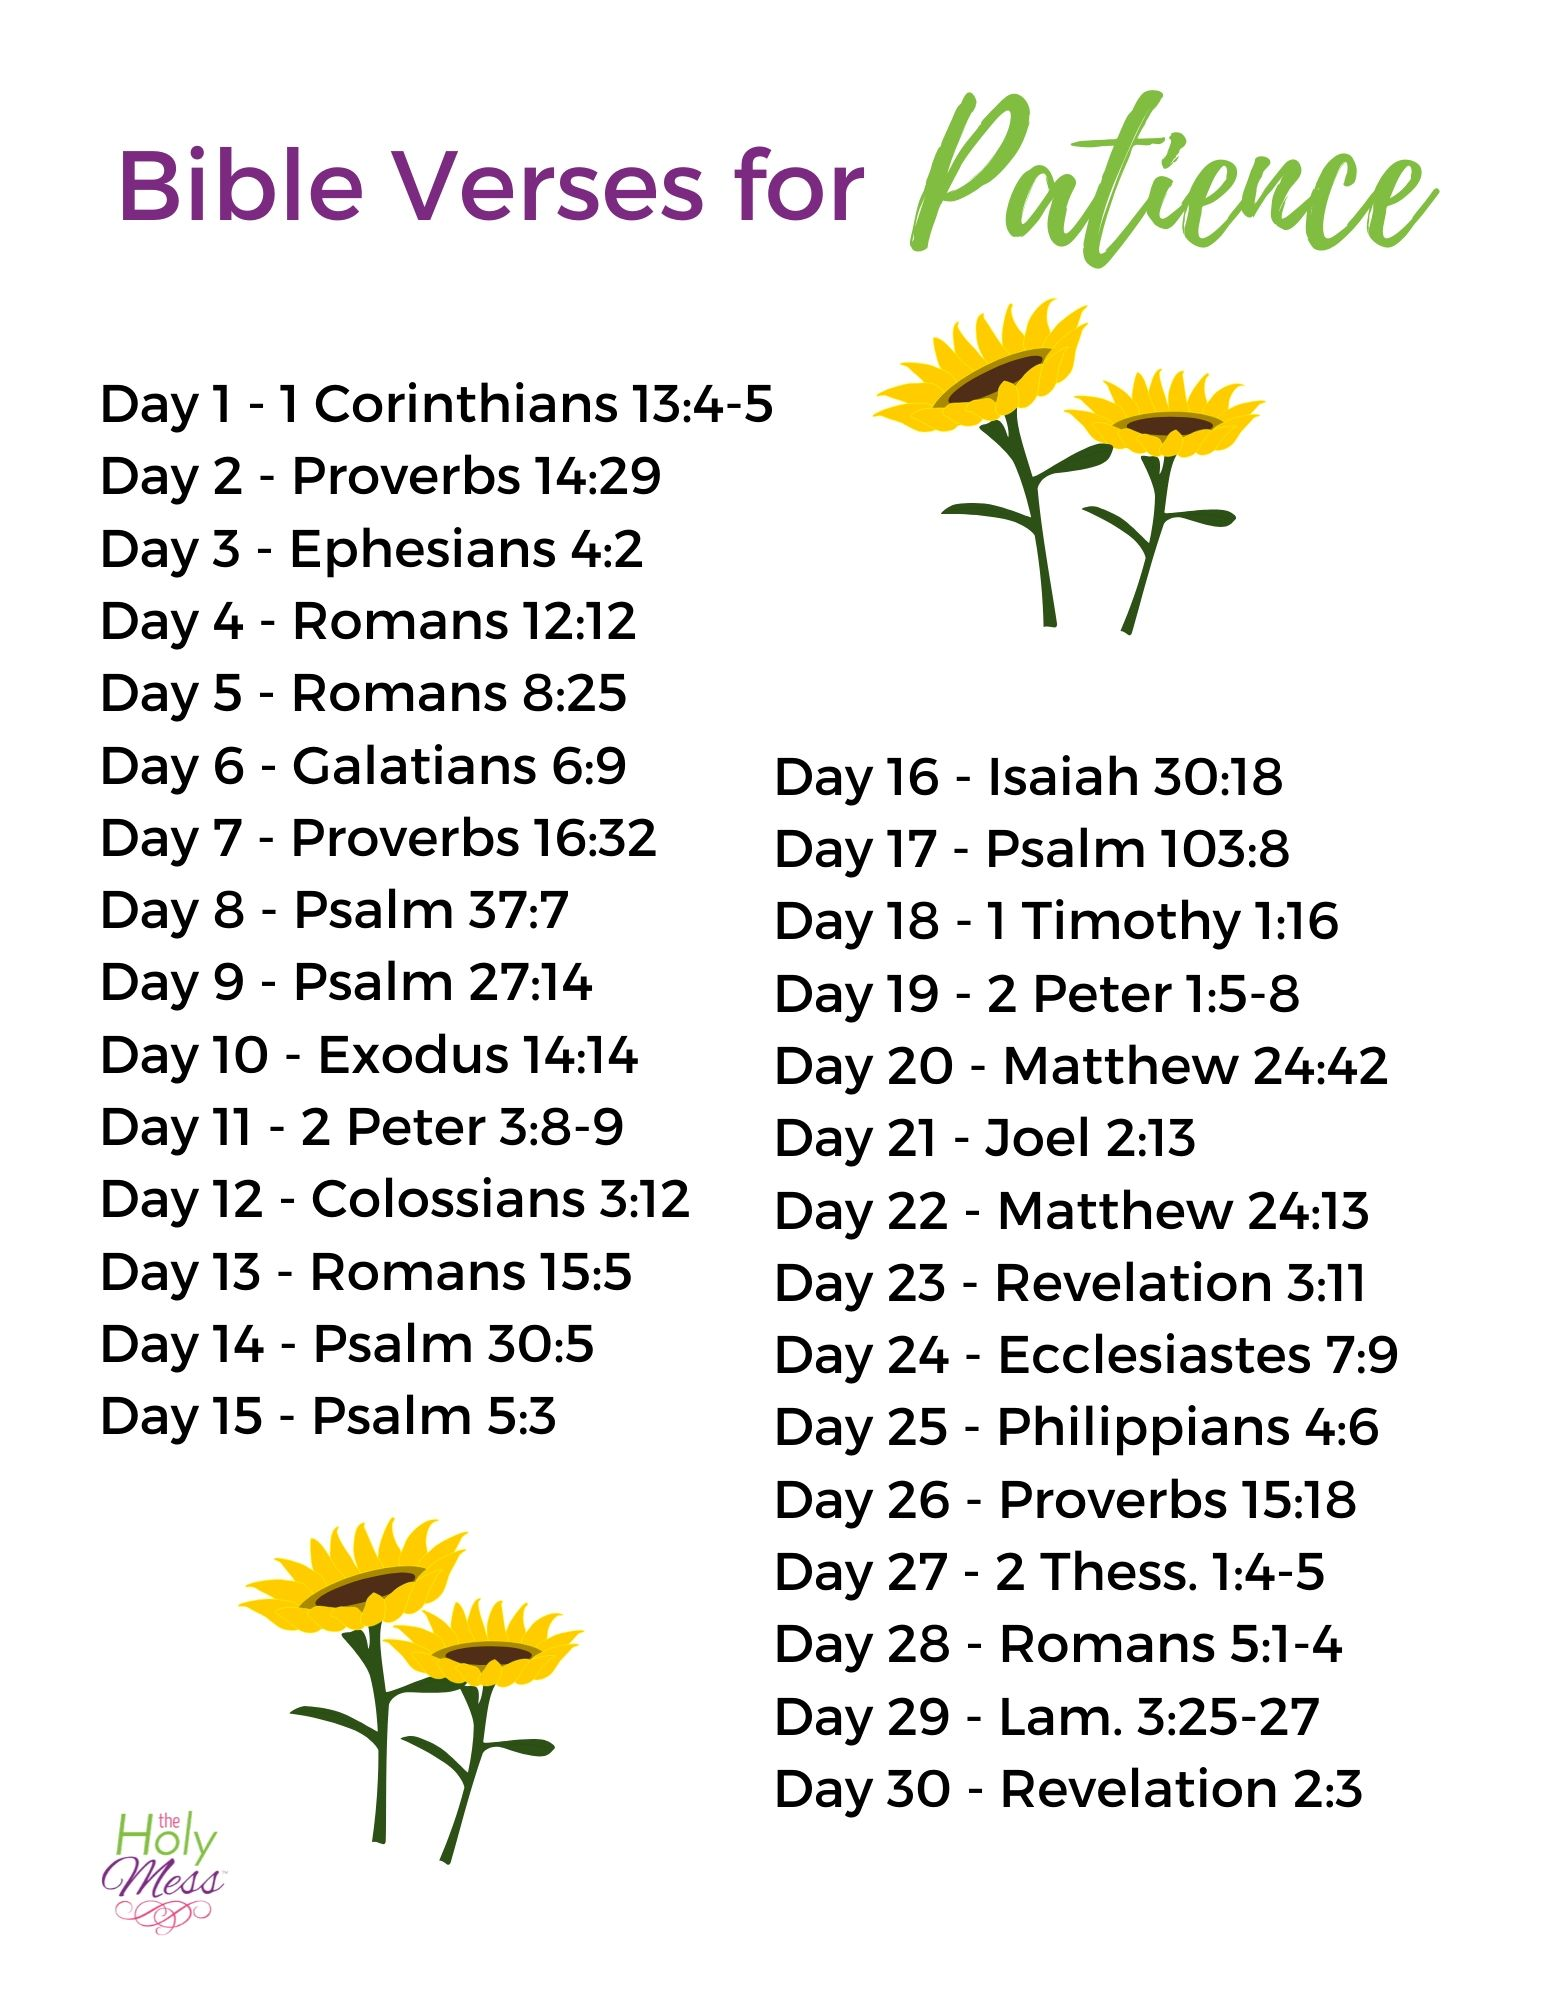 Bible Verses for Patience